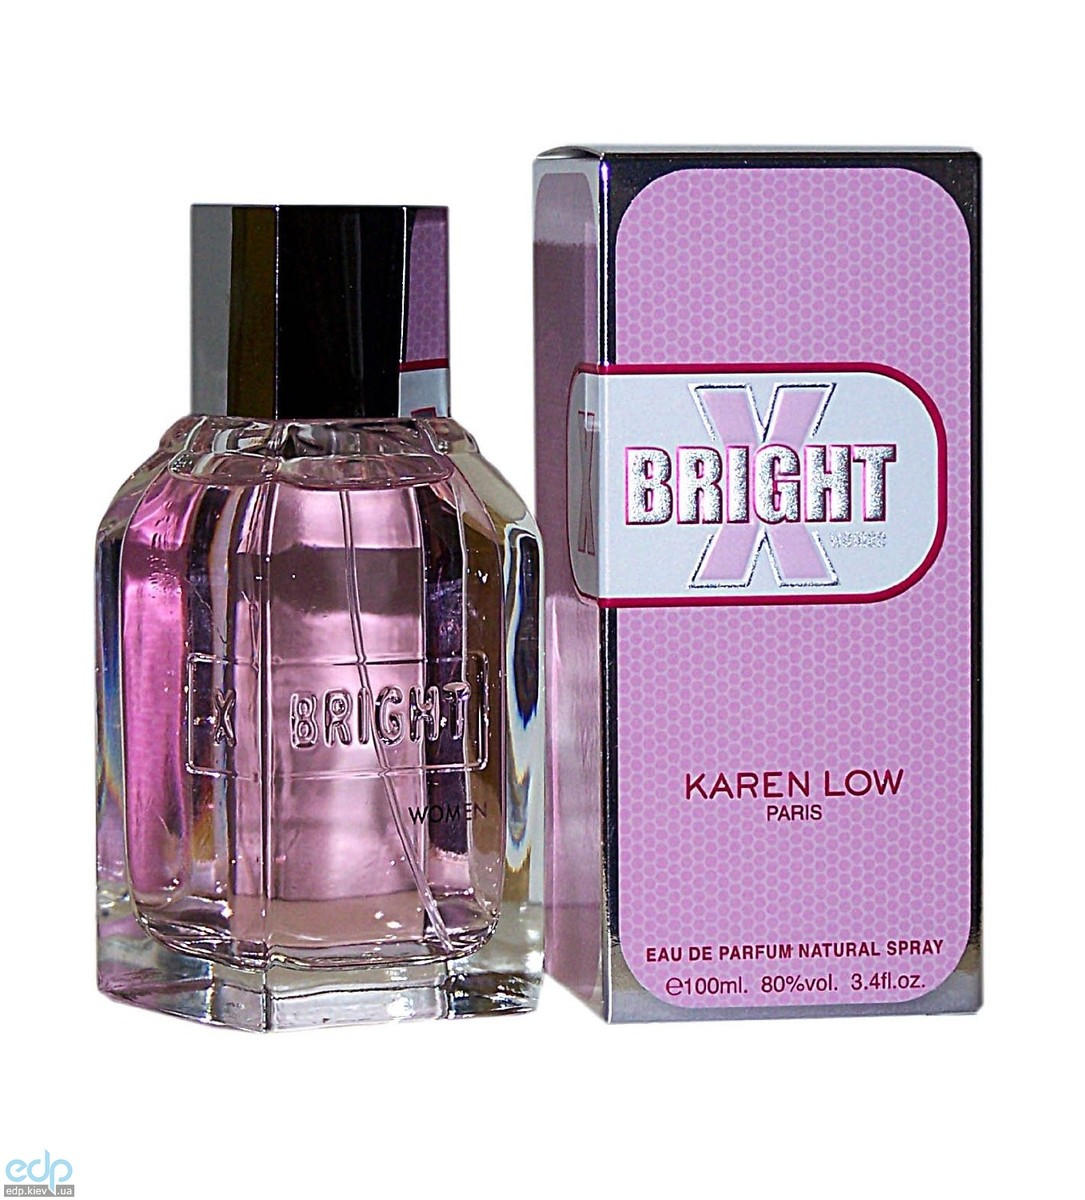 Karen Low X-Bright For Women